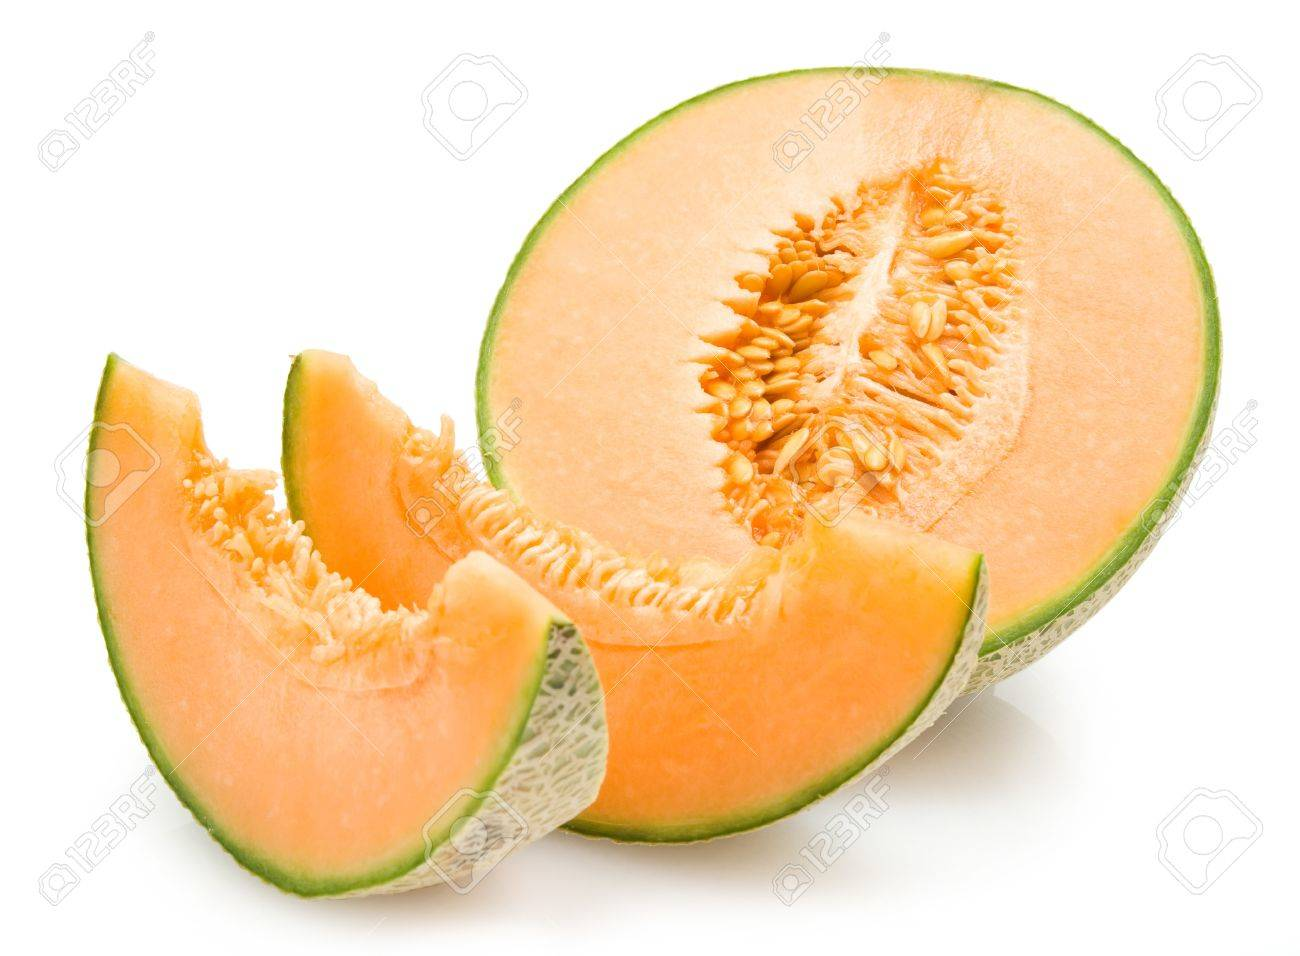 Cantaloupe Melon Stock Photo Picture And Royalty Free Image Image 11701845 Here you can explore hq cantaloupe transparent illustrations, icons and clipart with filter setting like polish your personal project or design with these cantaloupe transparent png images, make it even. cantaloupe melon